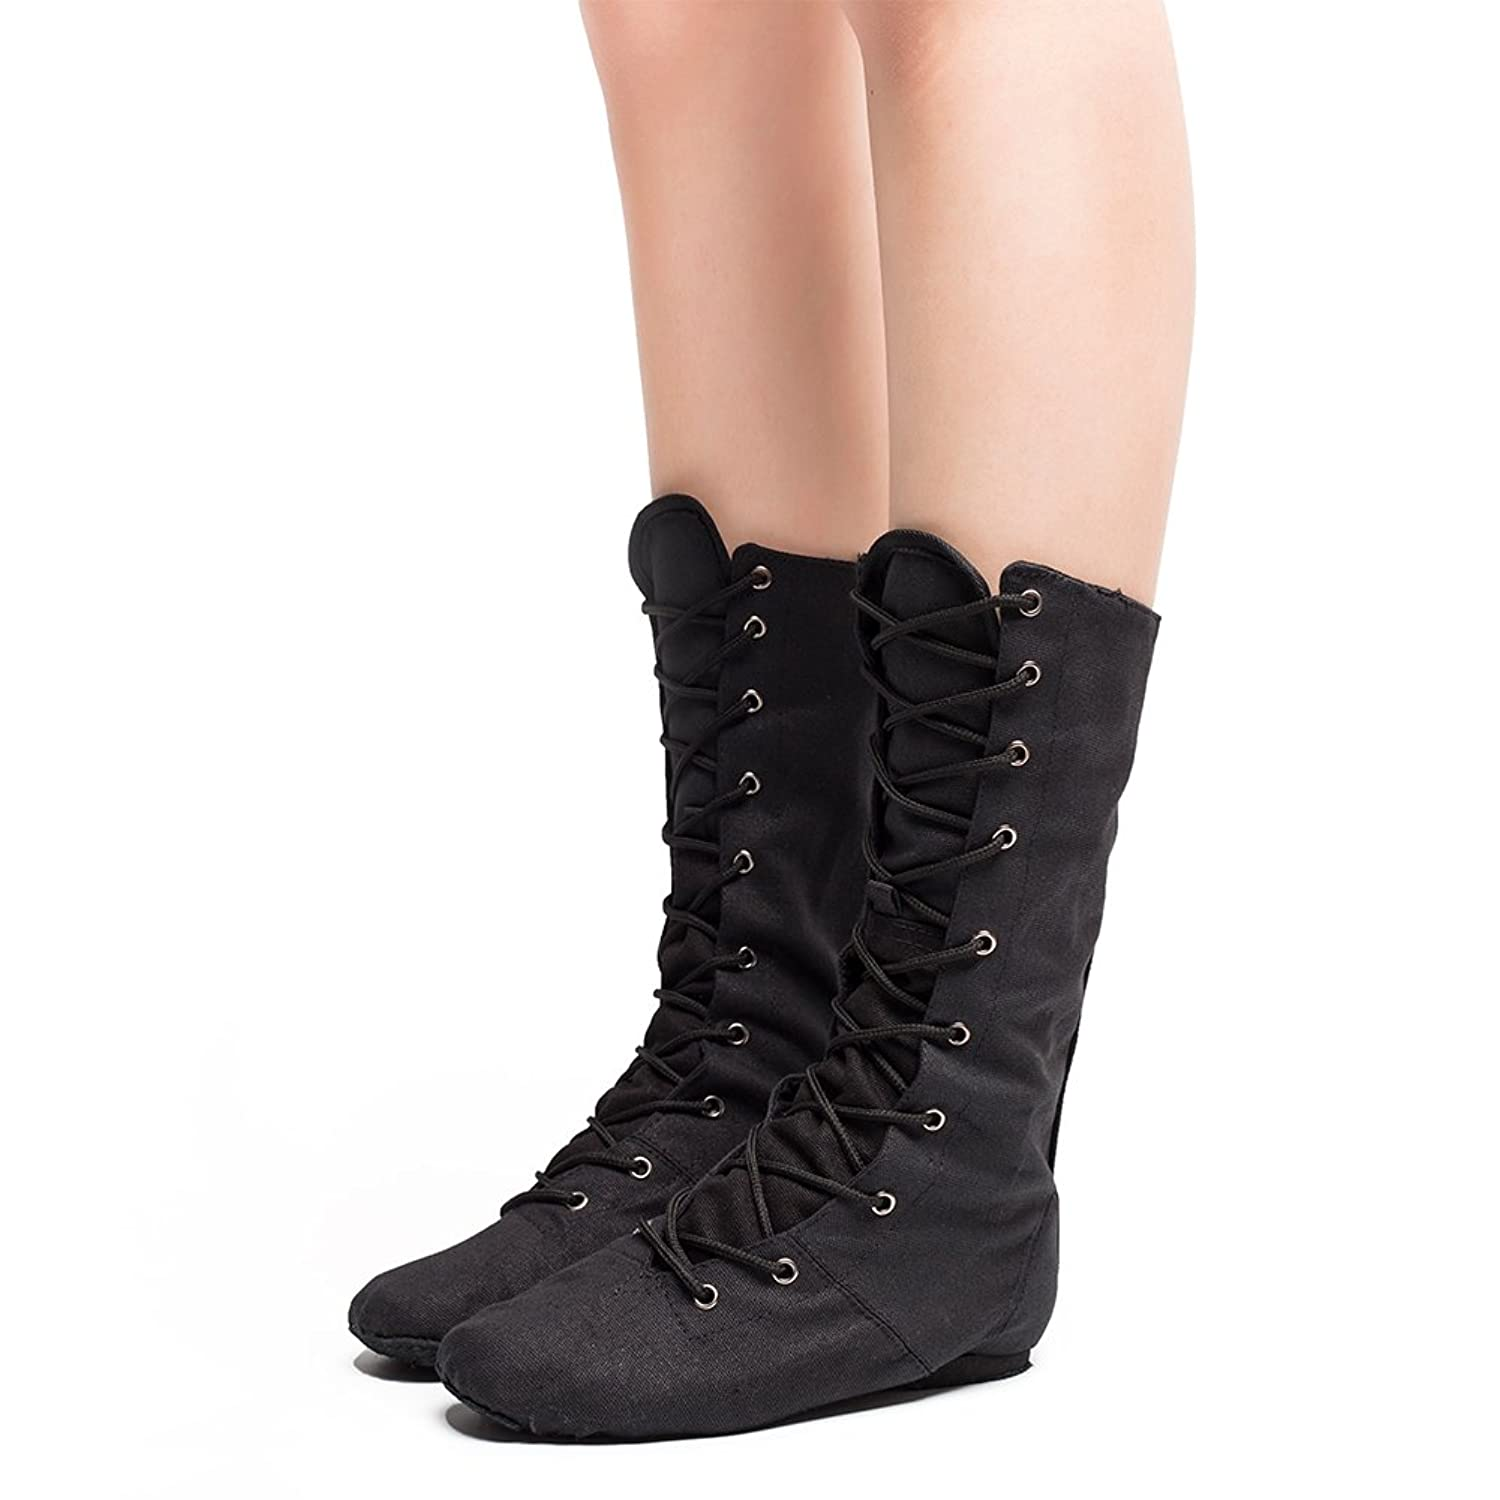 Vintage Boots- Winter Rain and Snow Boots Womens Canvas Cosplay Dance Boots Red/Black/White $29.90 AT vintagedancer.com